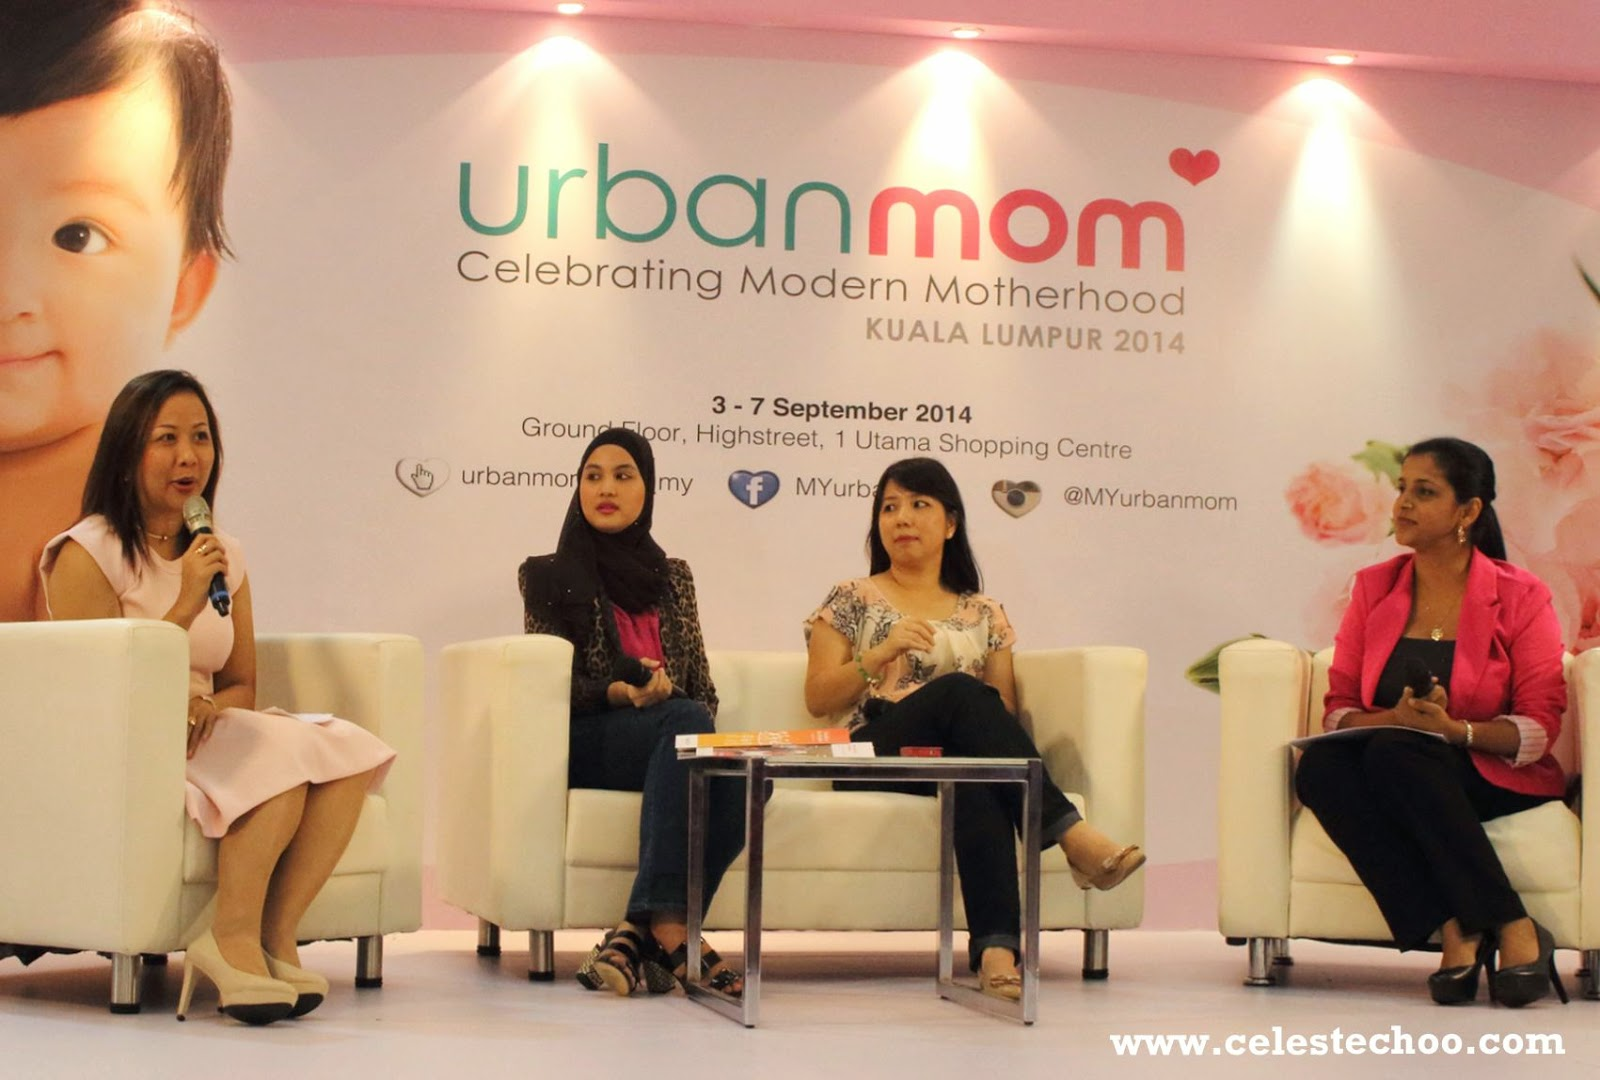 urbanmom-flexworklifemy-flexible-work-hours-for-women